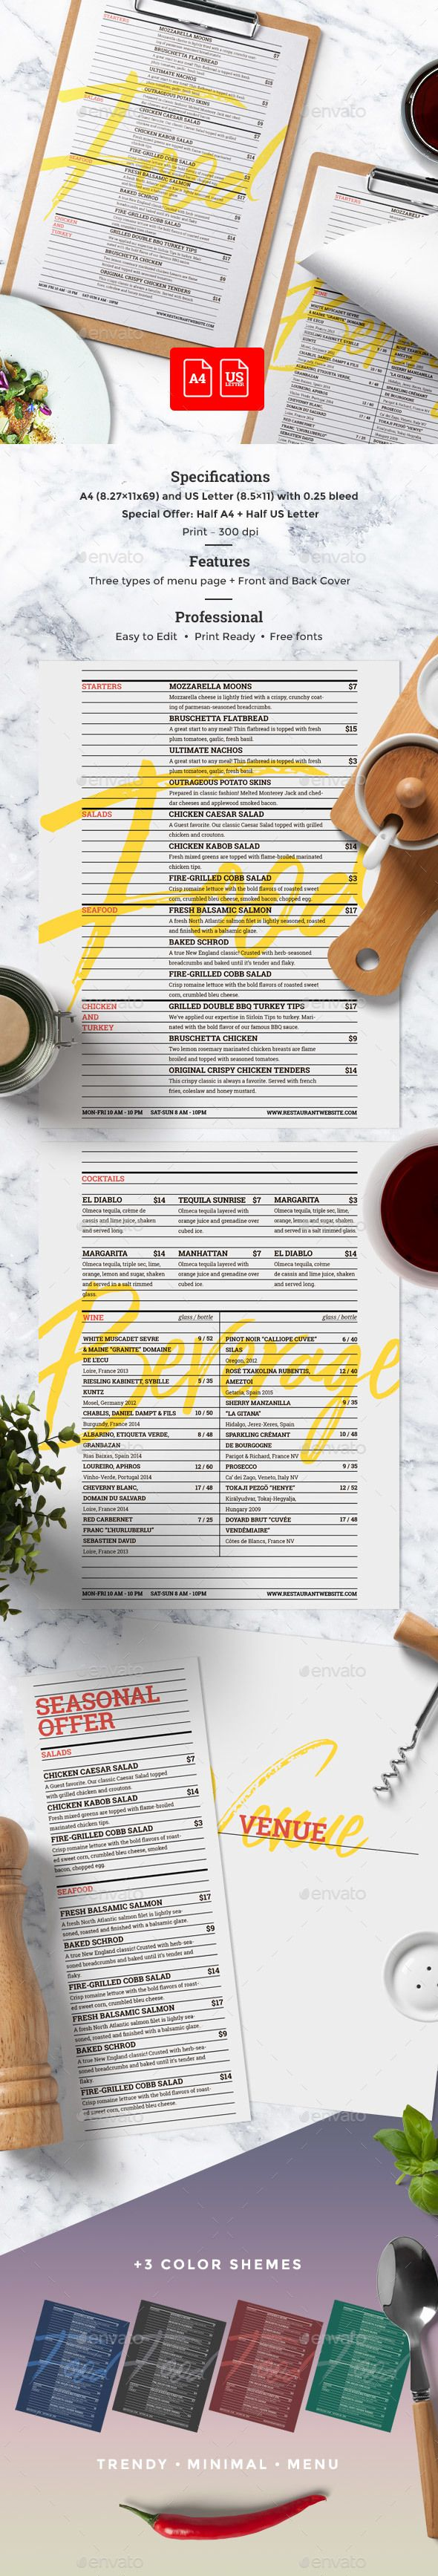 Cafe Menu | Pinterest